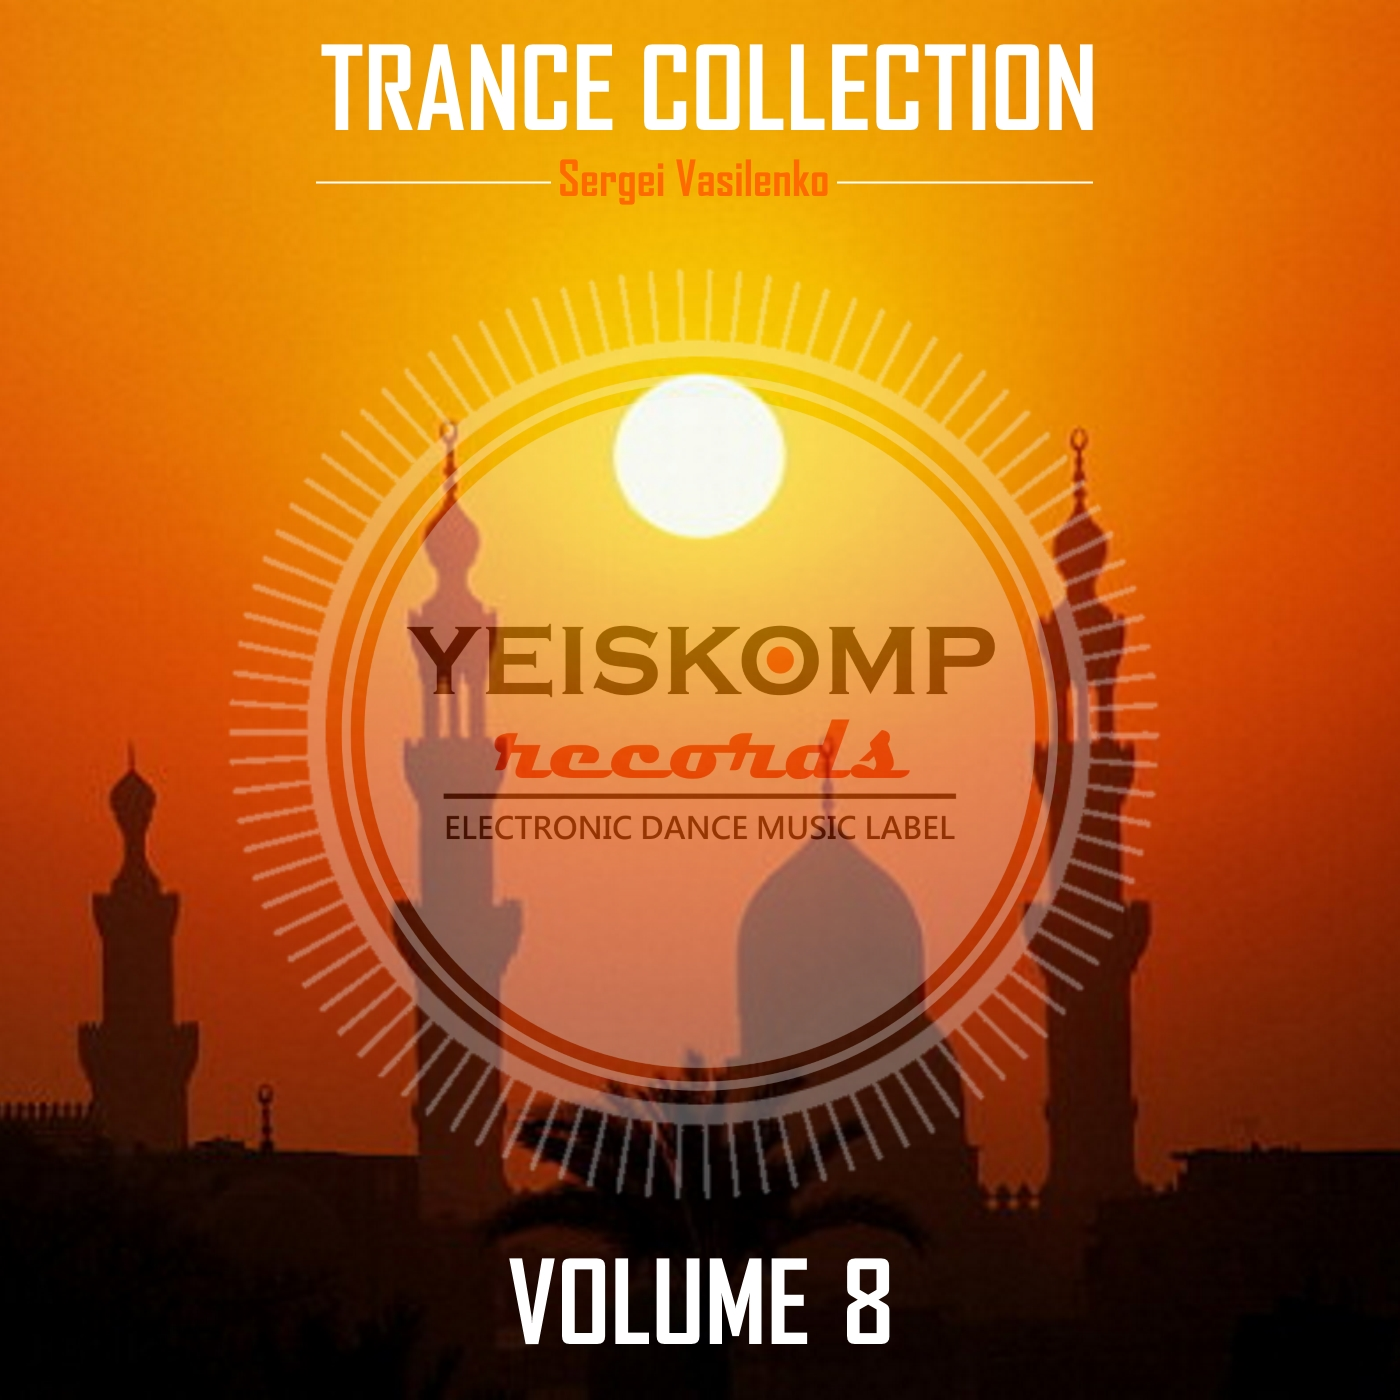 Trance Collection by Sergei Vasilenko, Vol. 8